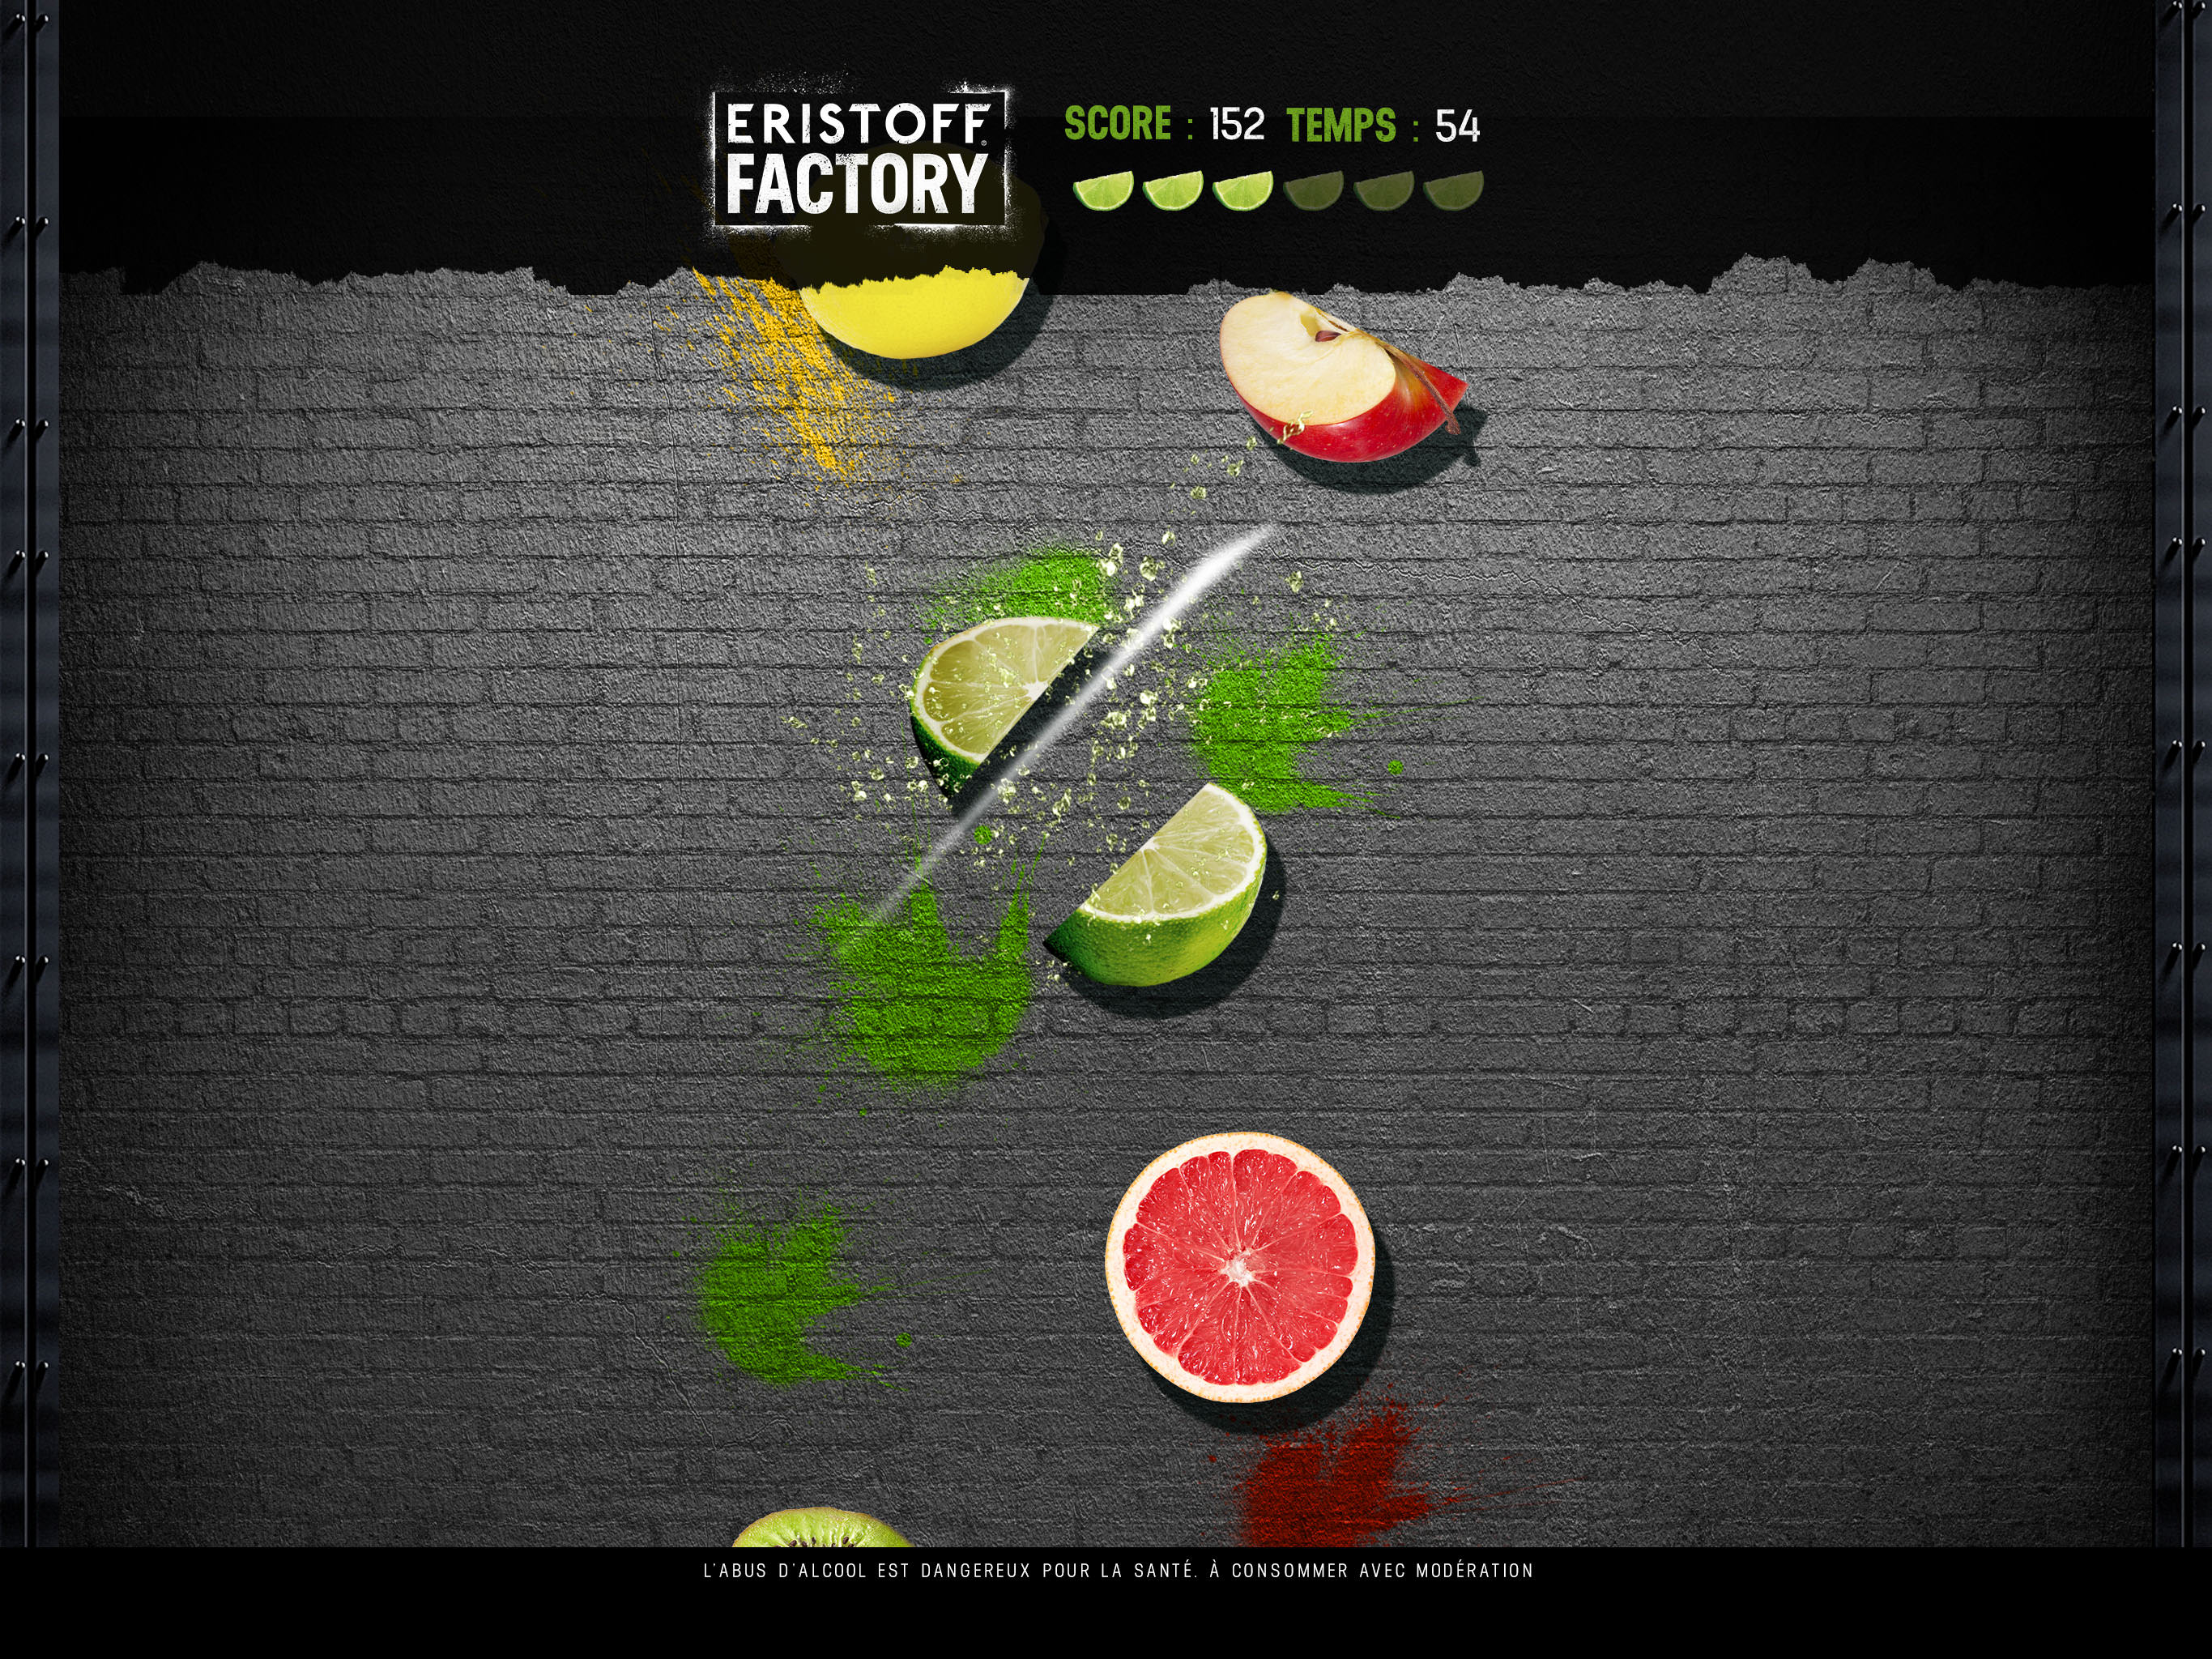 Fruit factory game - Renamed Eristoff Factory The 2015 Edition Allows The Internet User To Recreate The 4 Steps Of A Ca Piroska S Making In A Playful And Engaging Way